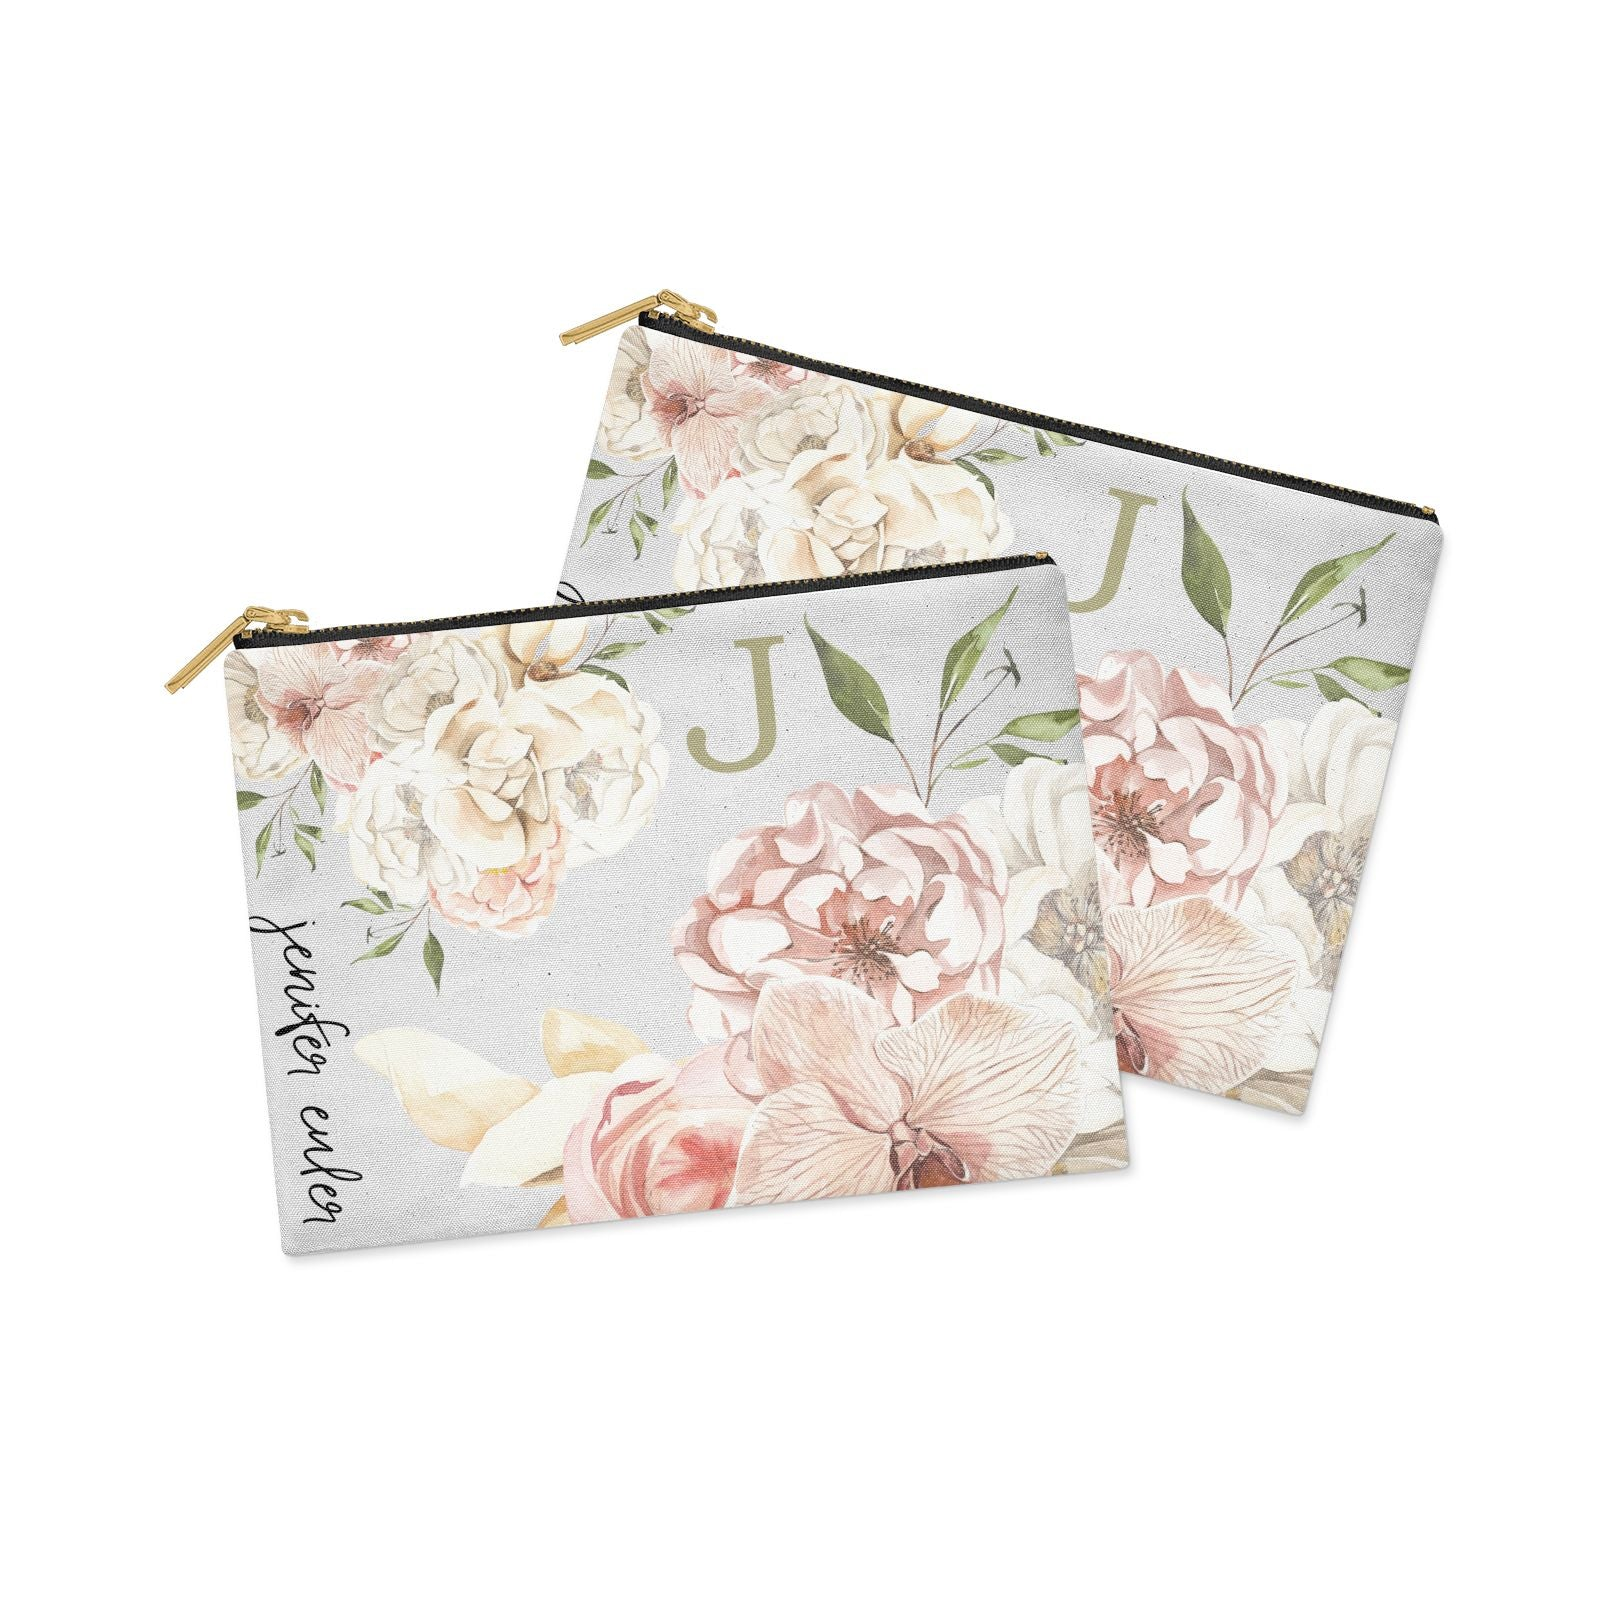 Spring Flowers Personalised Name Clutch Bag Zipper Pouch Alternative View